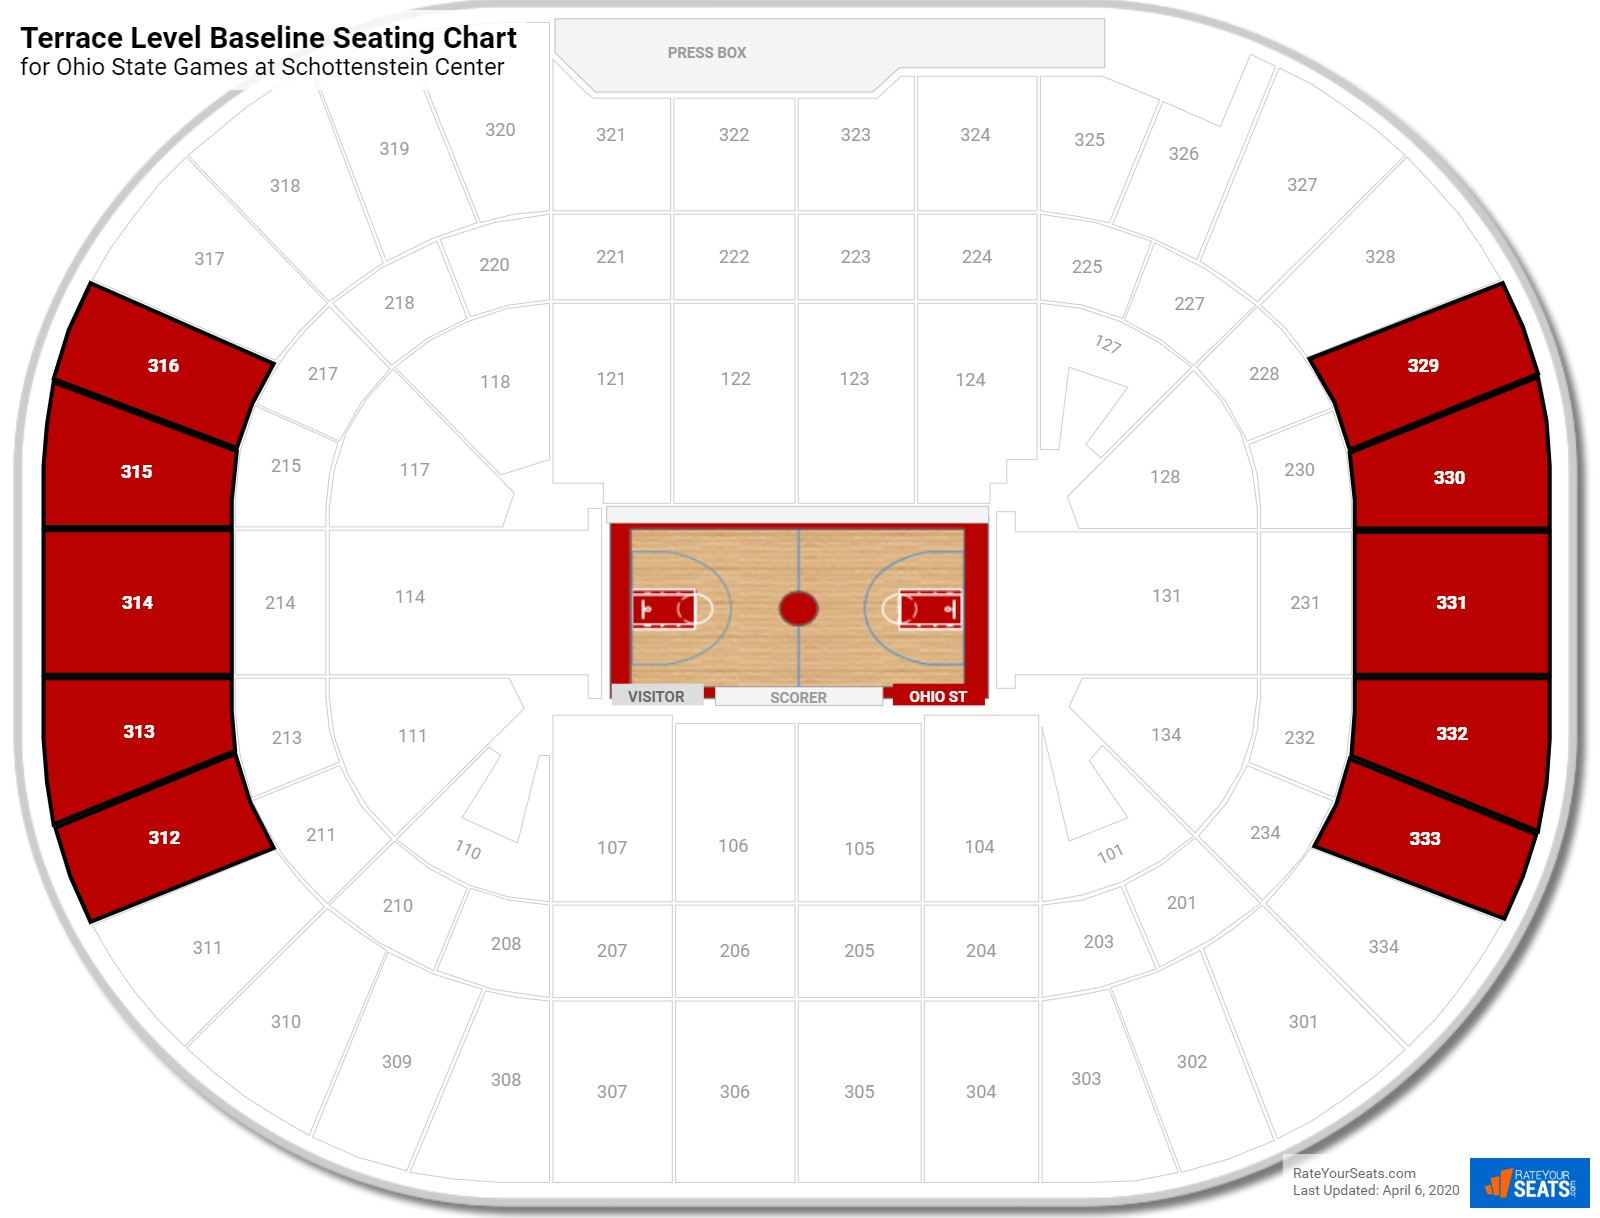 Schottenstein Center Terrace Level Baseline Seating Chart